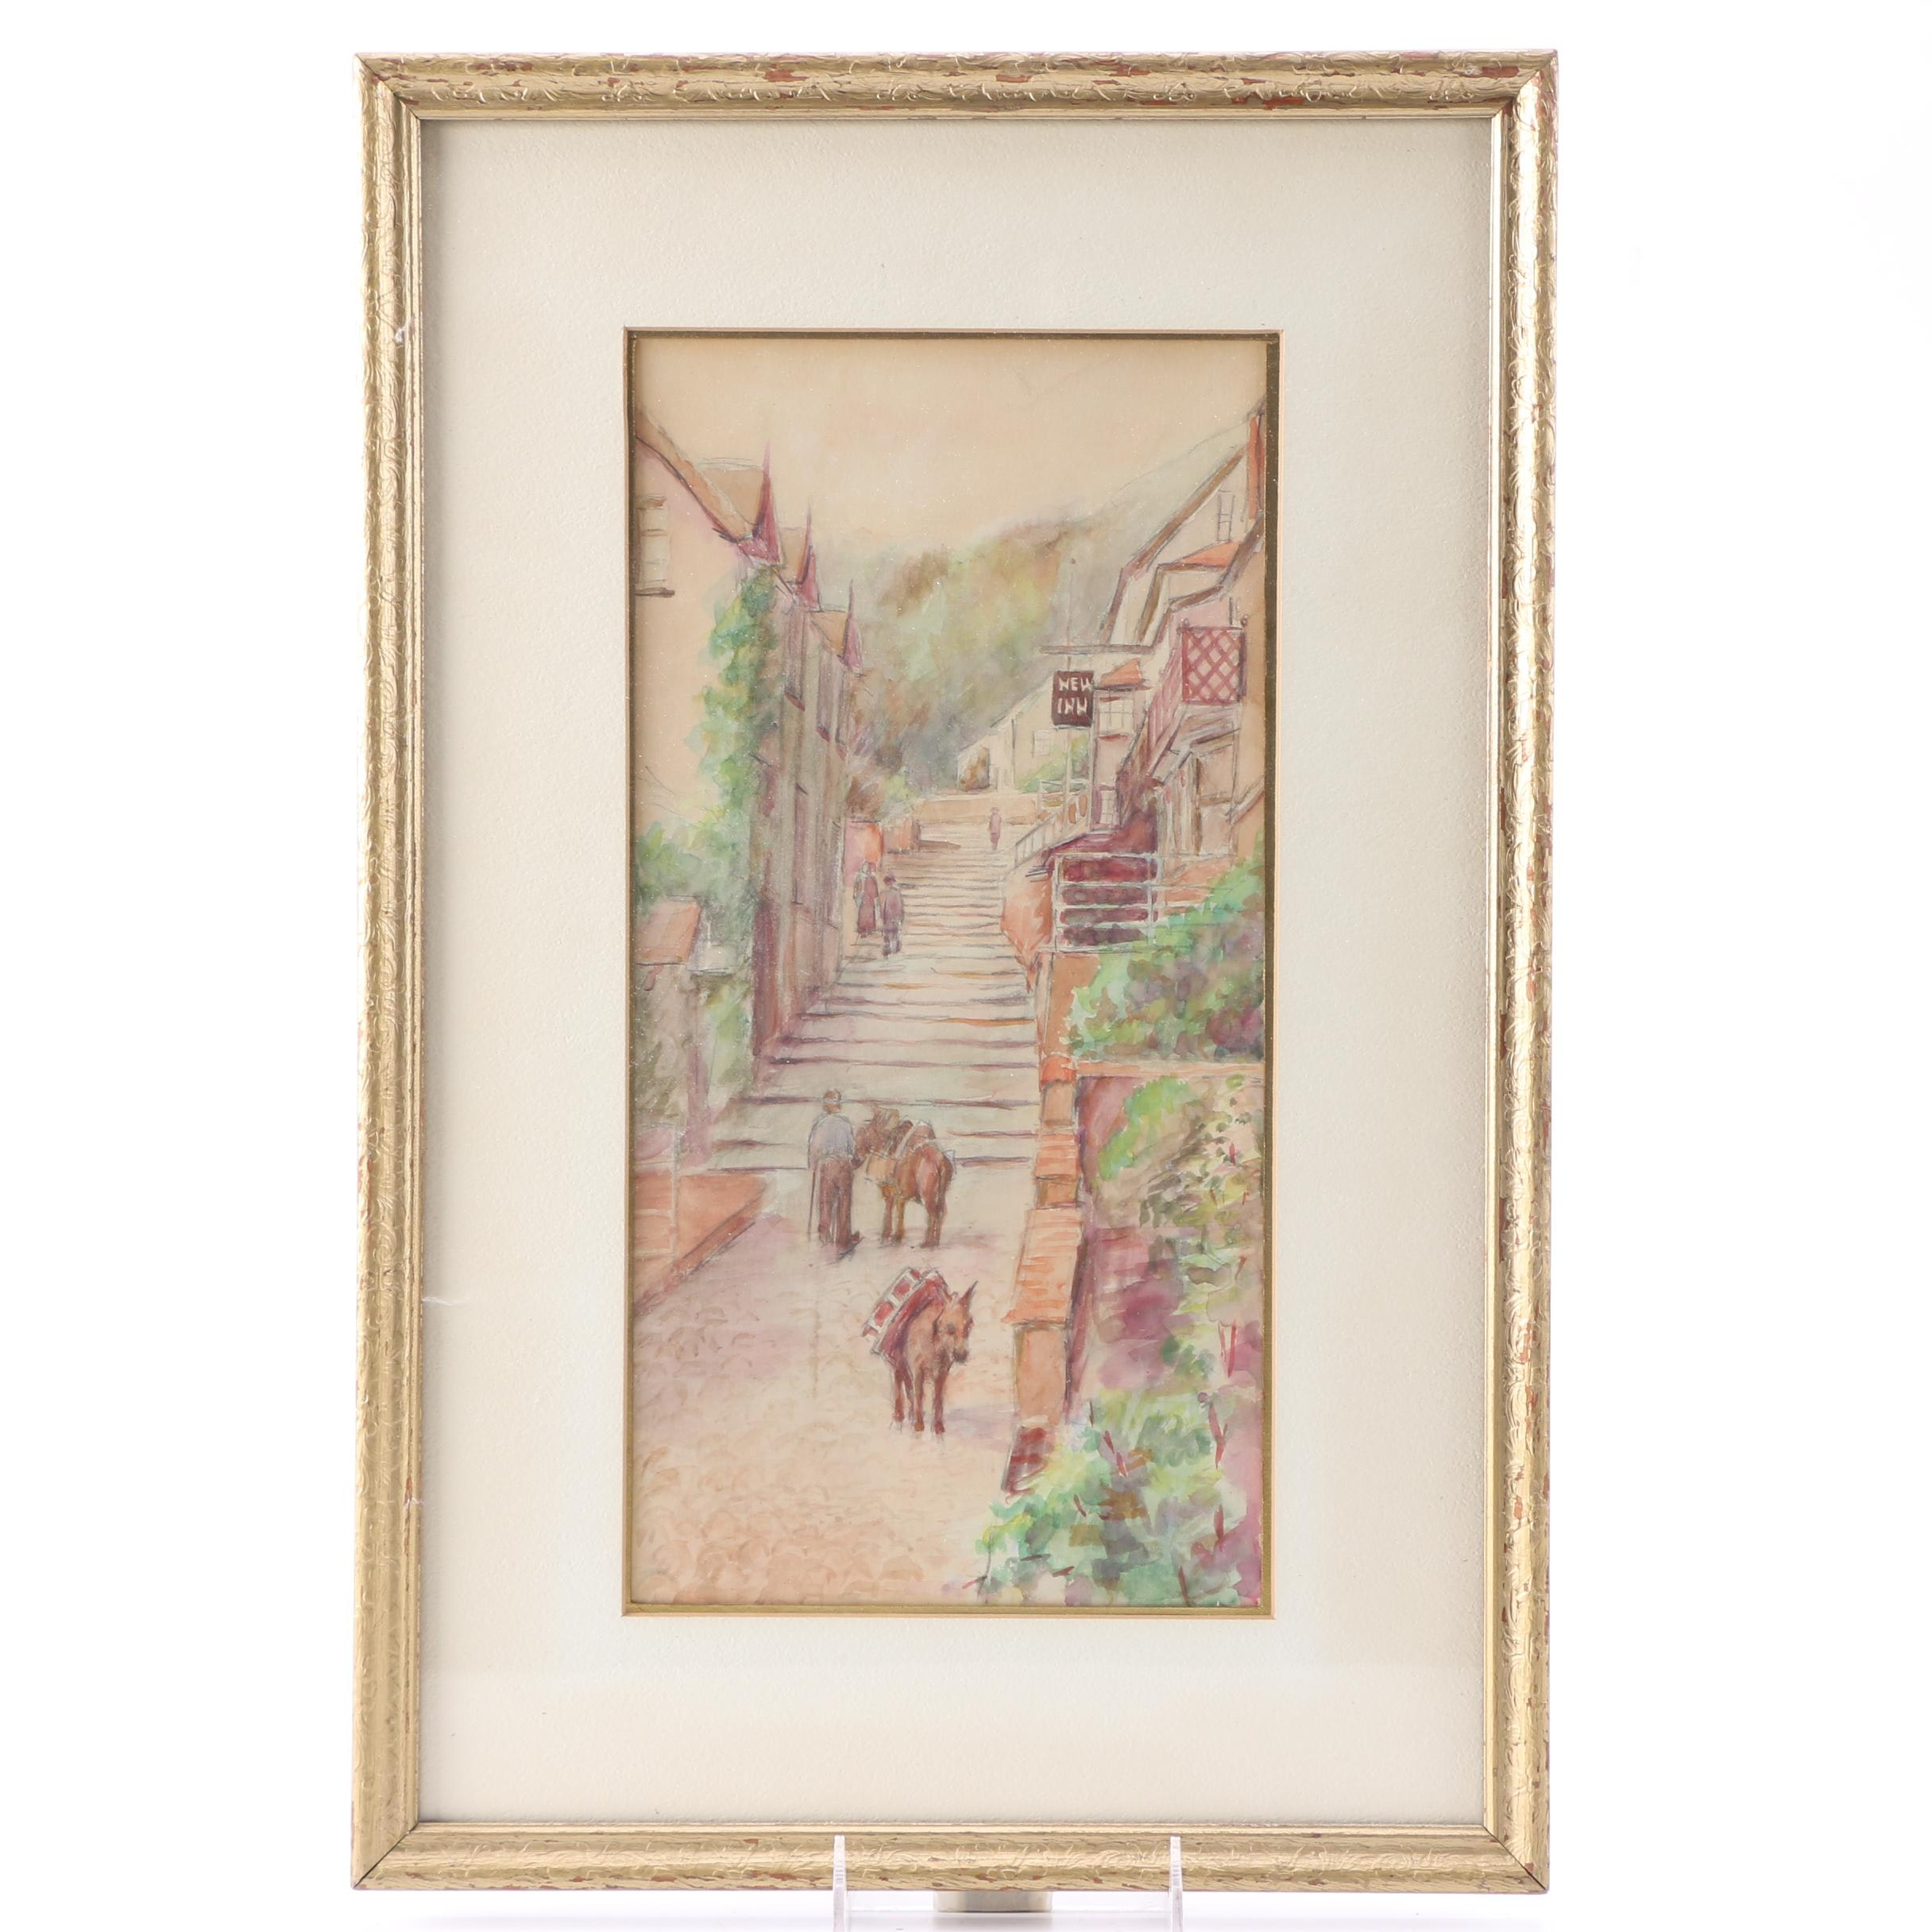 Watercolor Painting on Paper of Town Scene